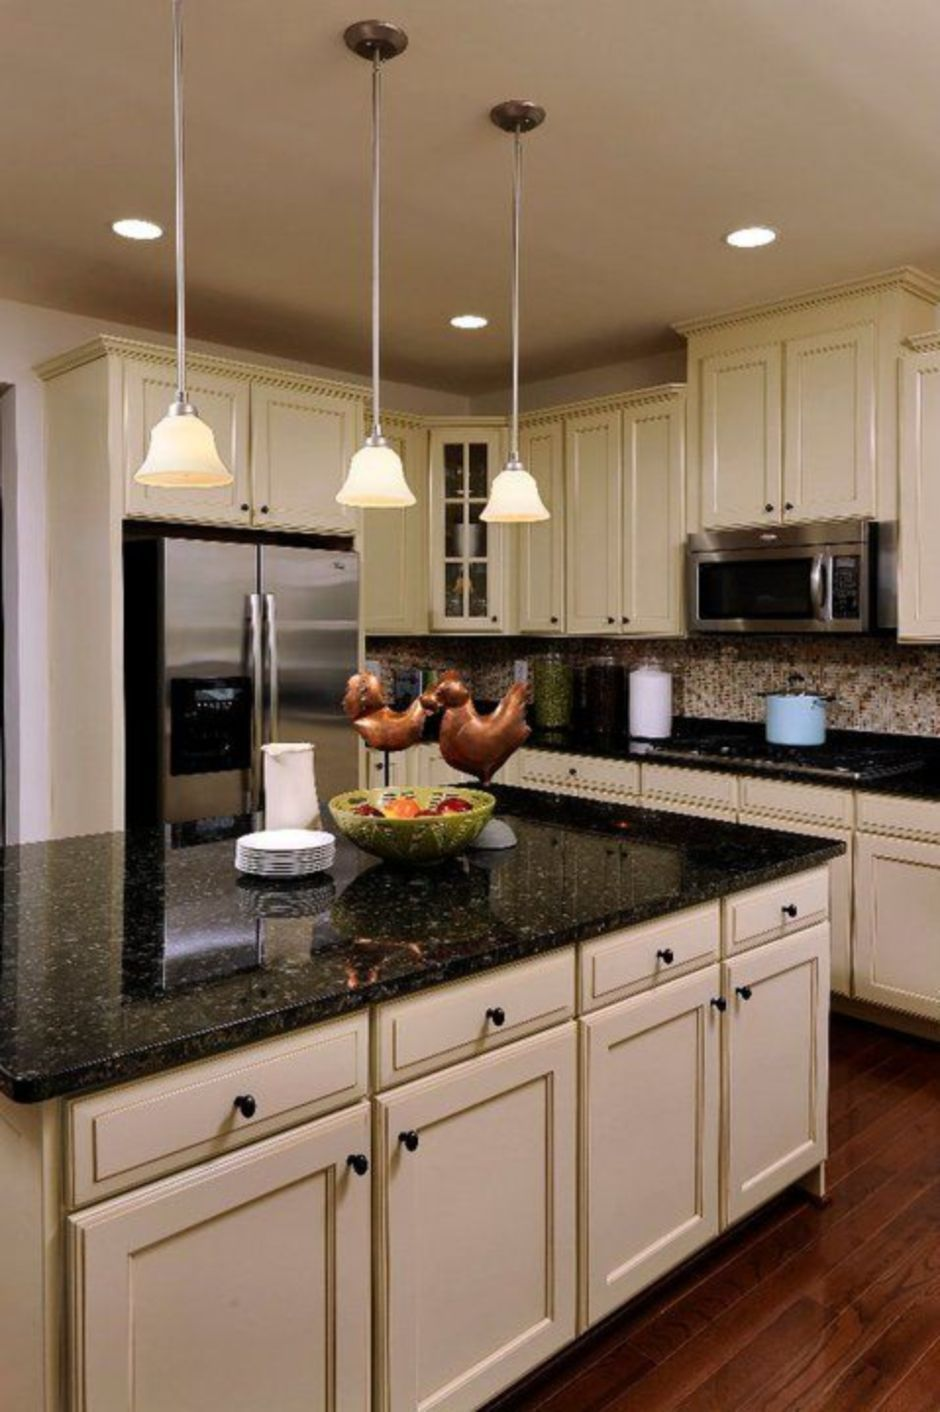 elegant kitchen light cabinets with dark countertops 56 in 2020 kitchen cabinets decor on kitchen remodel dark countertops id=94692